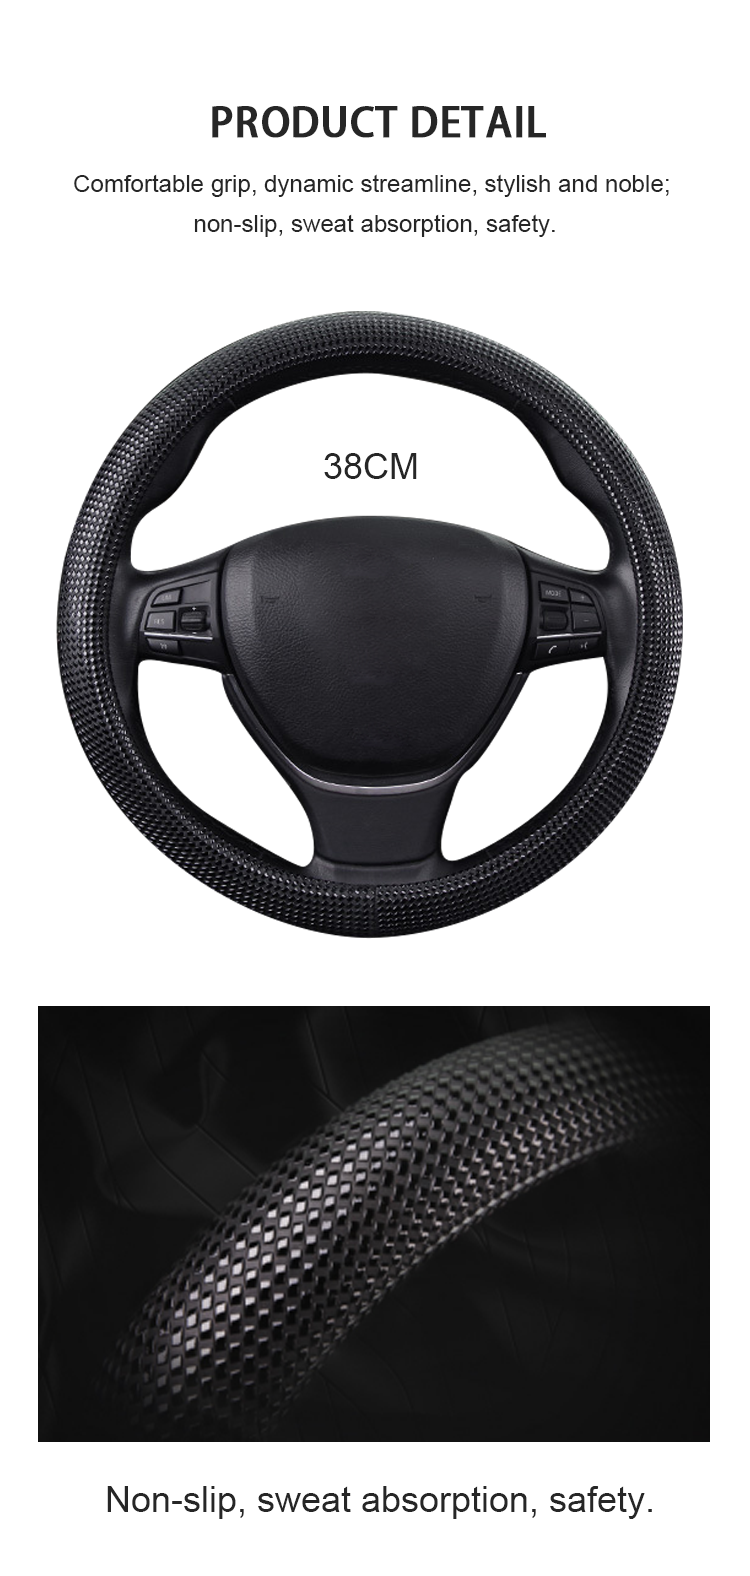 FX-P-101 1.5 inch PU leather steering wheel cover